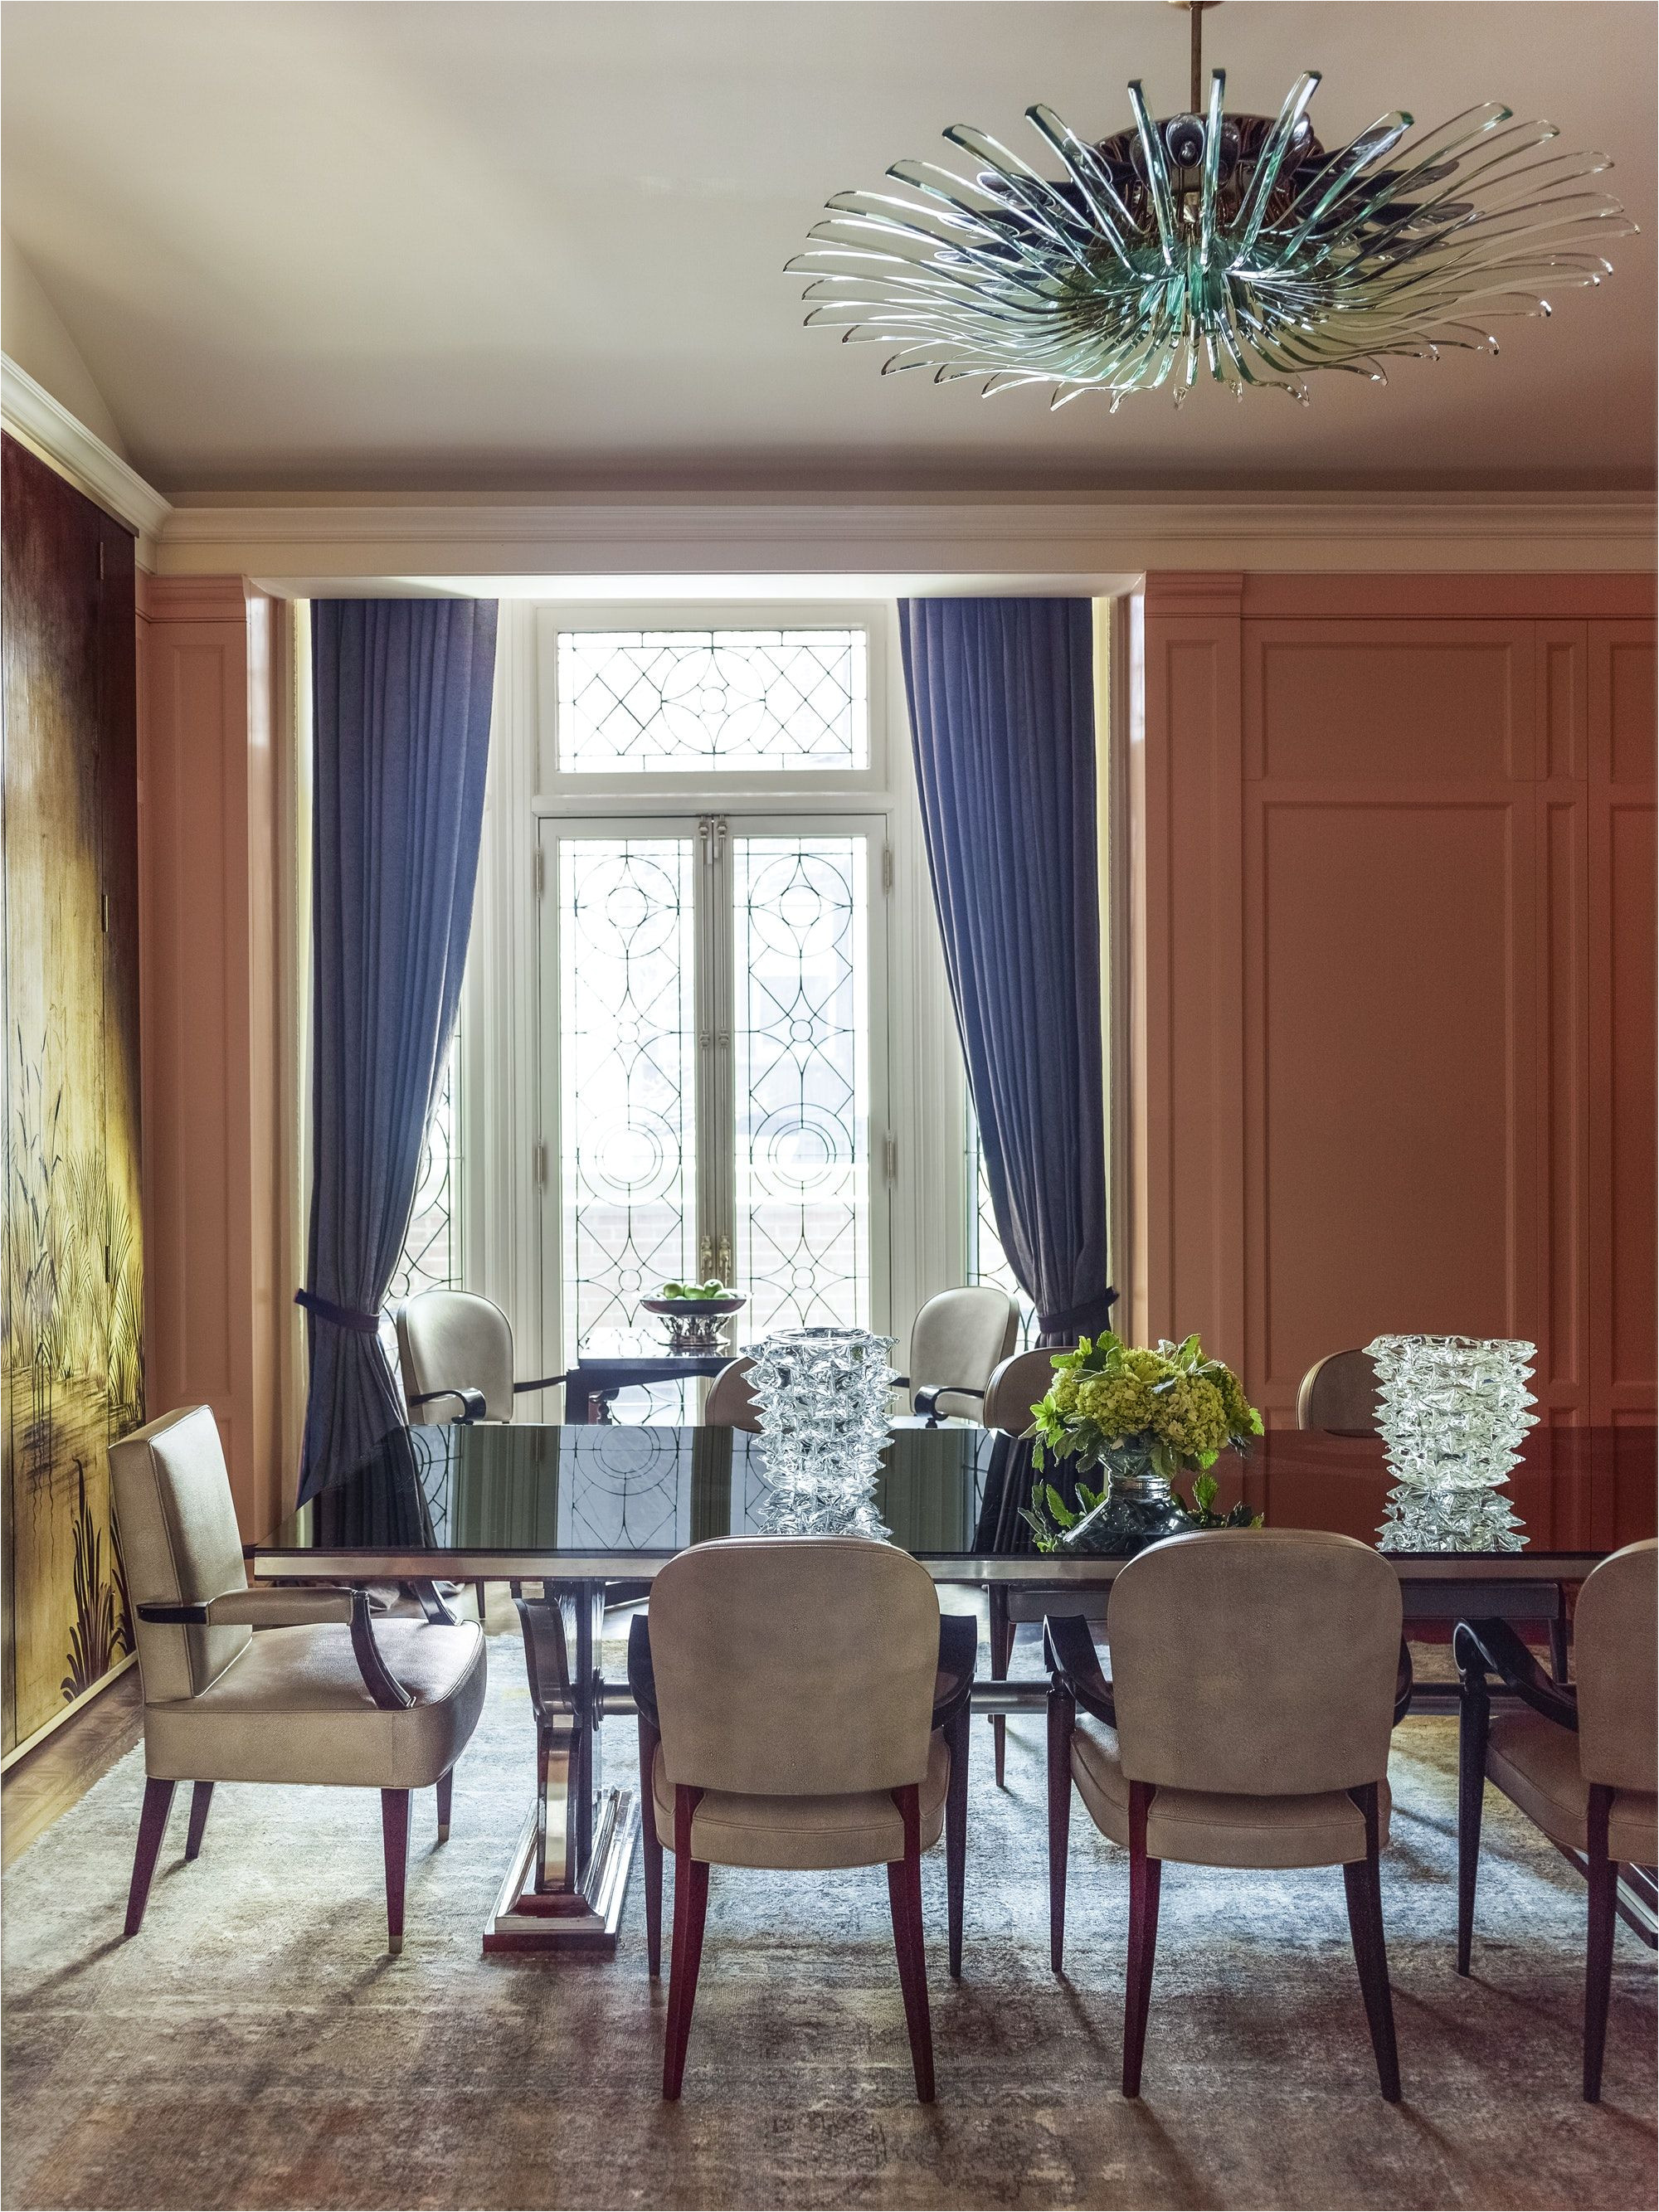 one focal point in this formal dining room is a green glass chandelier by max ingrand